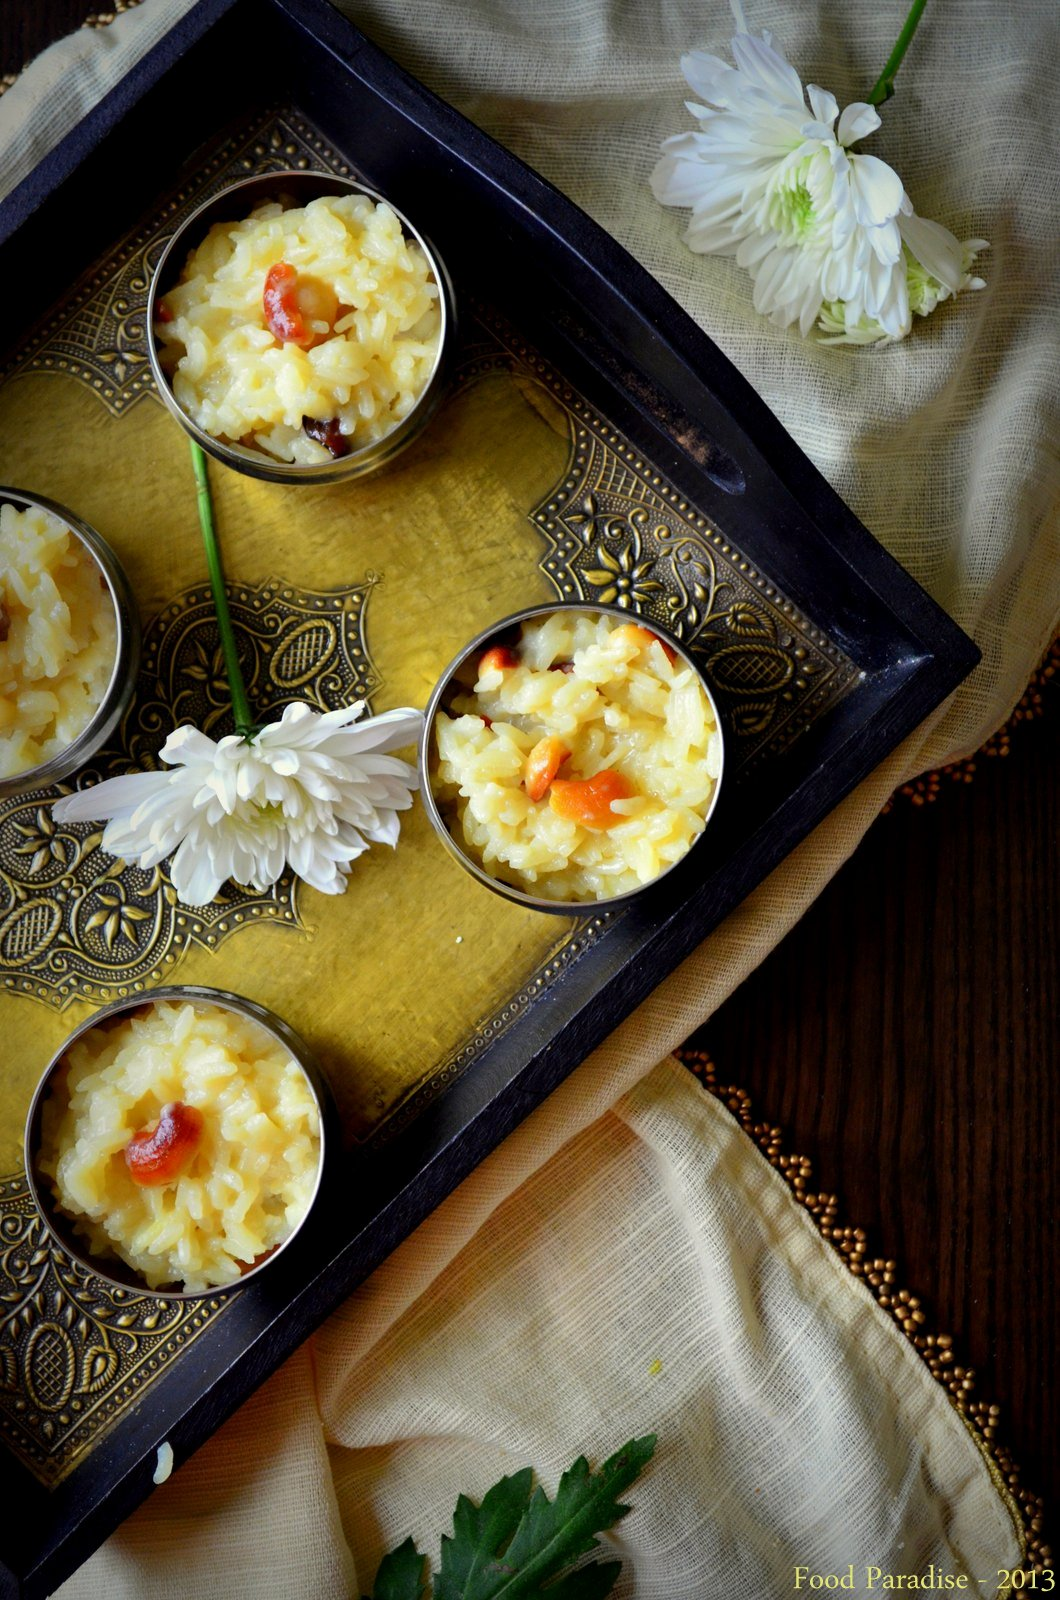 Paramannam - Jaggery Rice Pudding